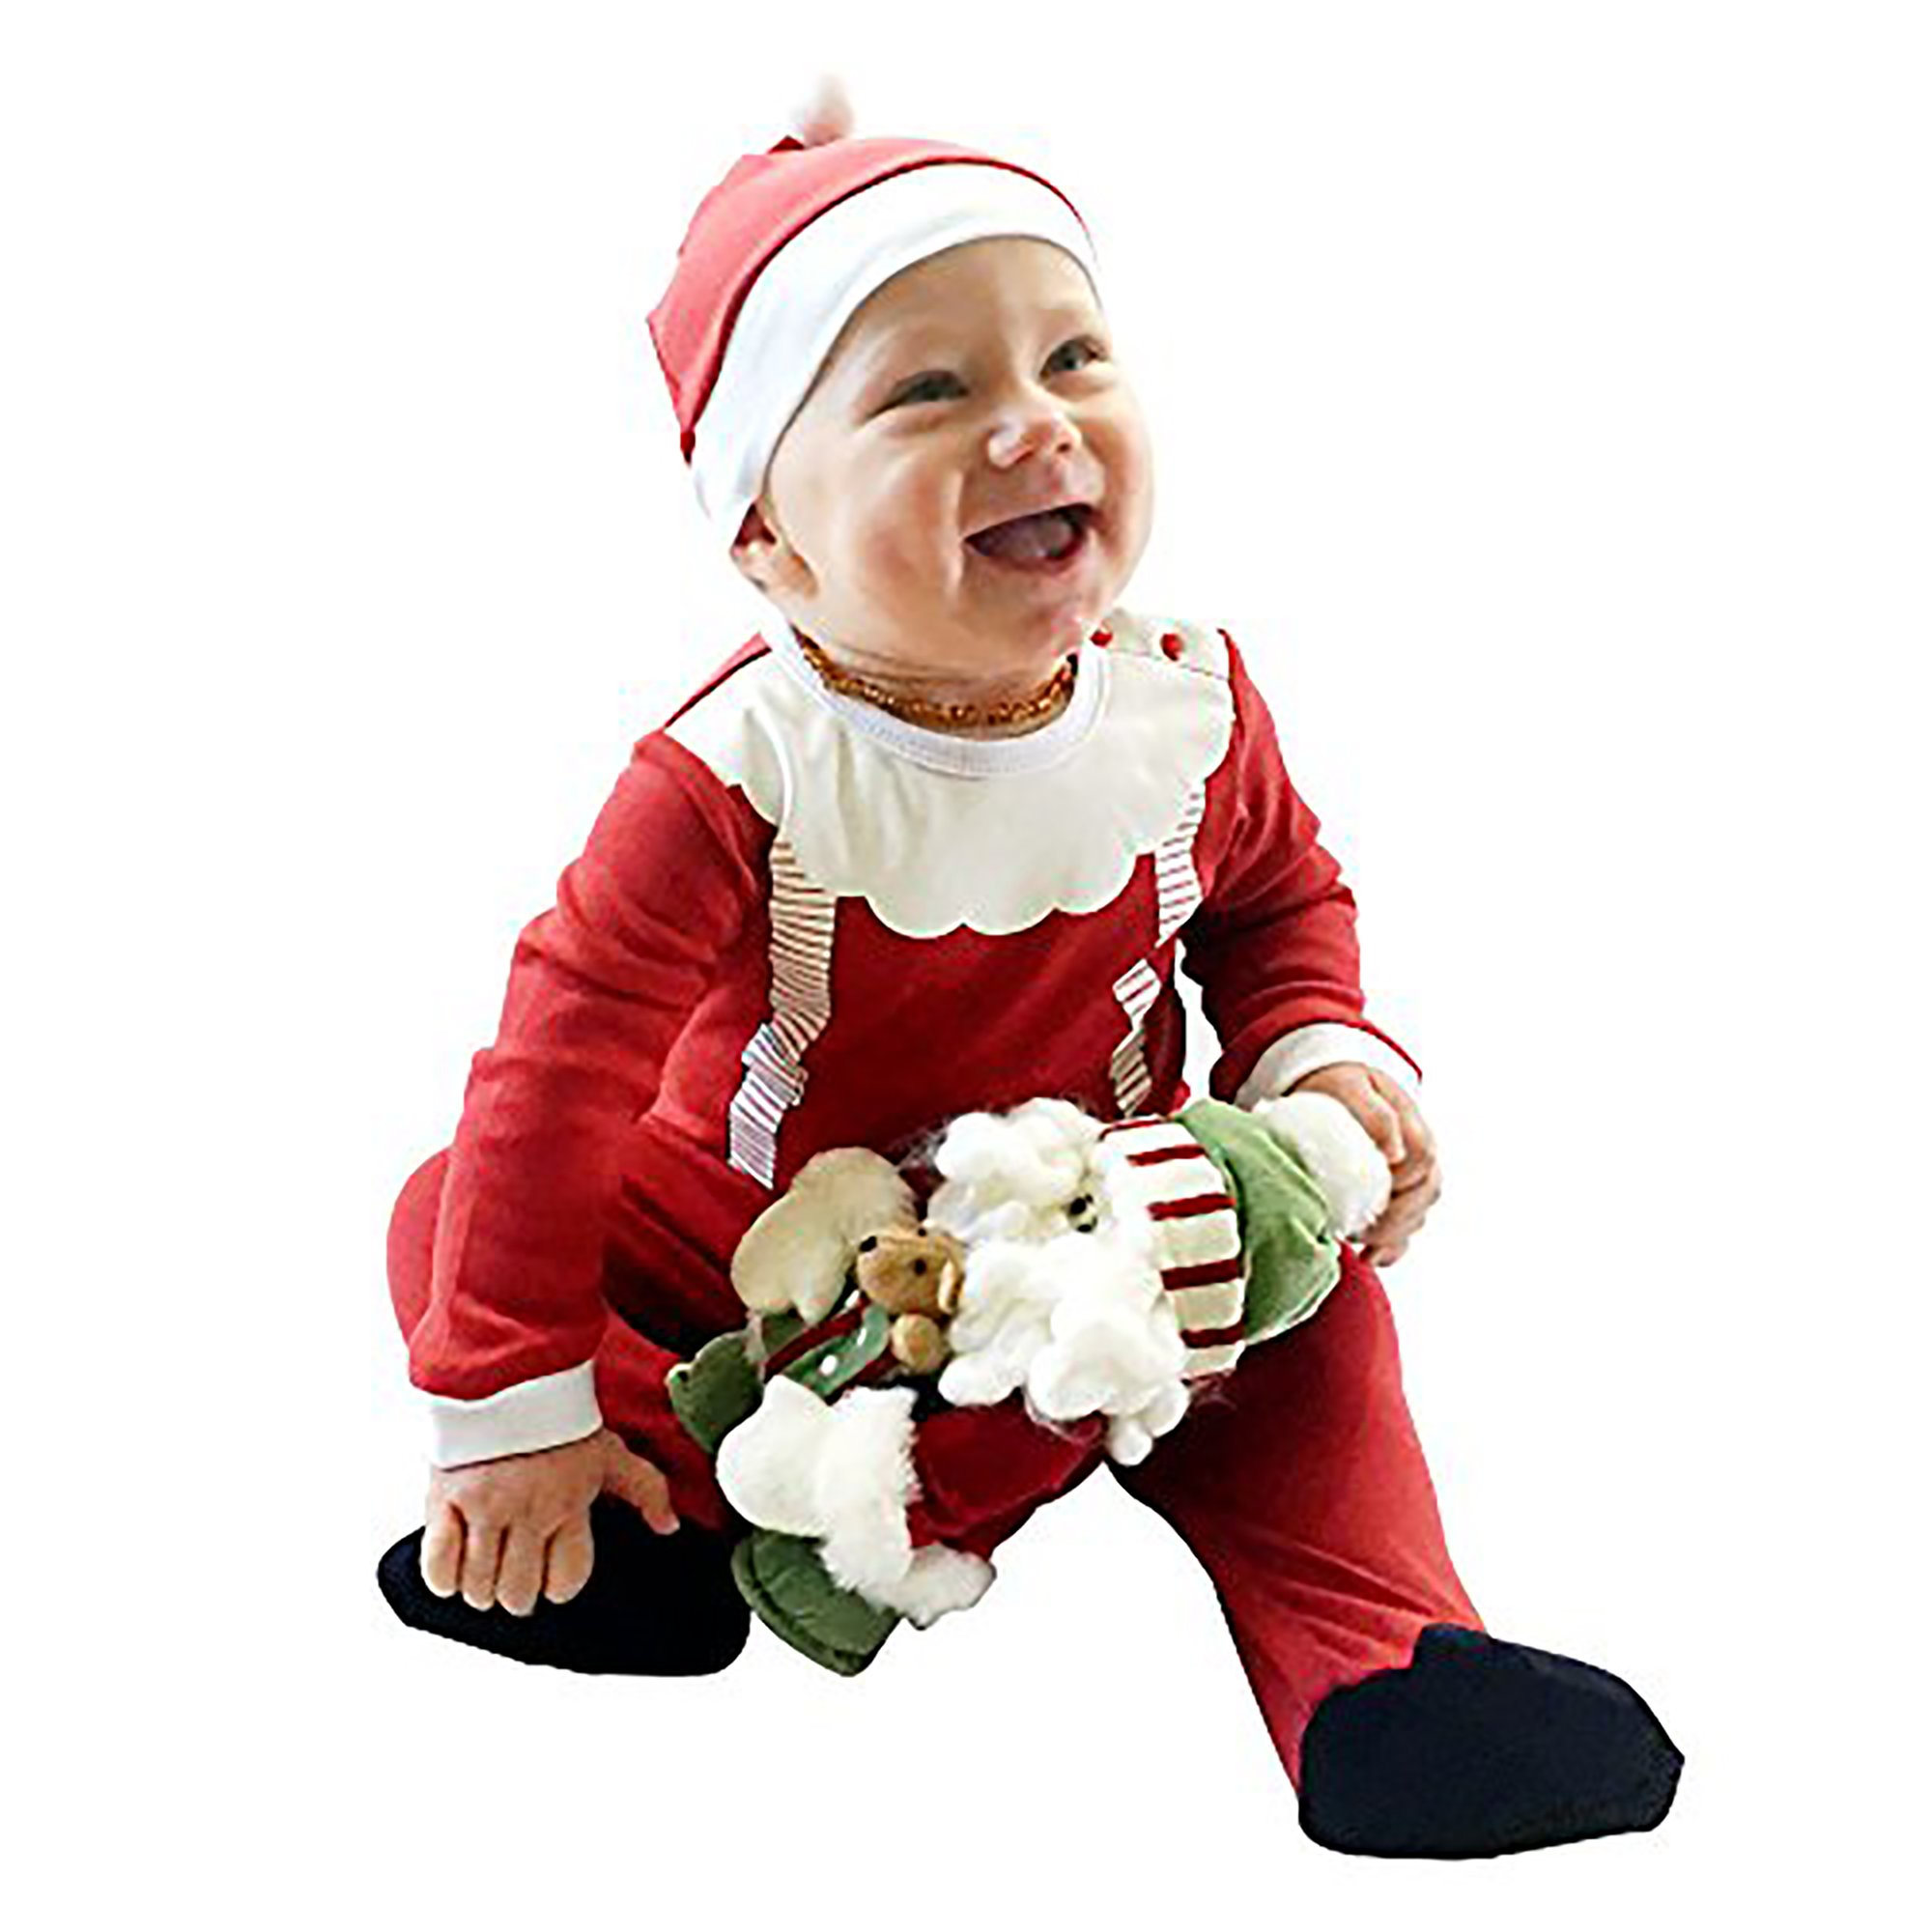 Fayfaire Christmas Pajamas Boutique Quality: Adorable Xmas Santa Suit with Hat 6-12M by Fayfaire (Image #7)